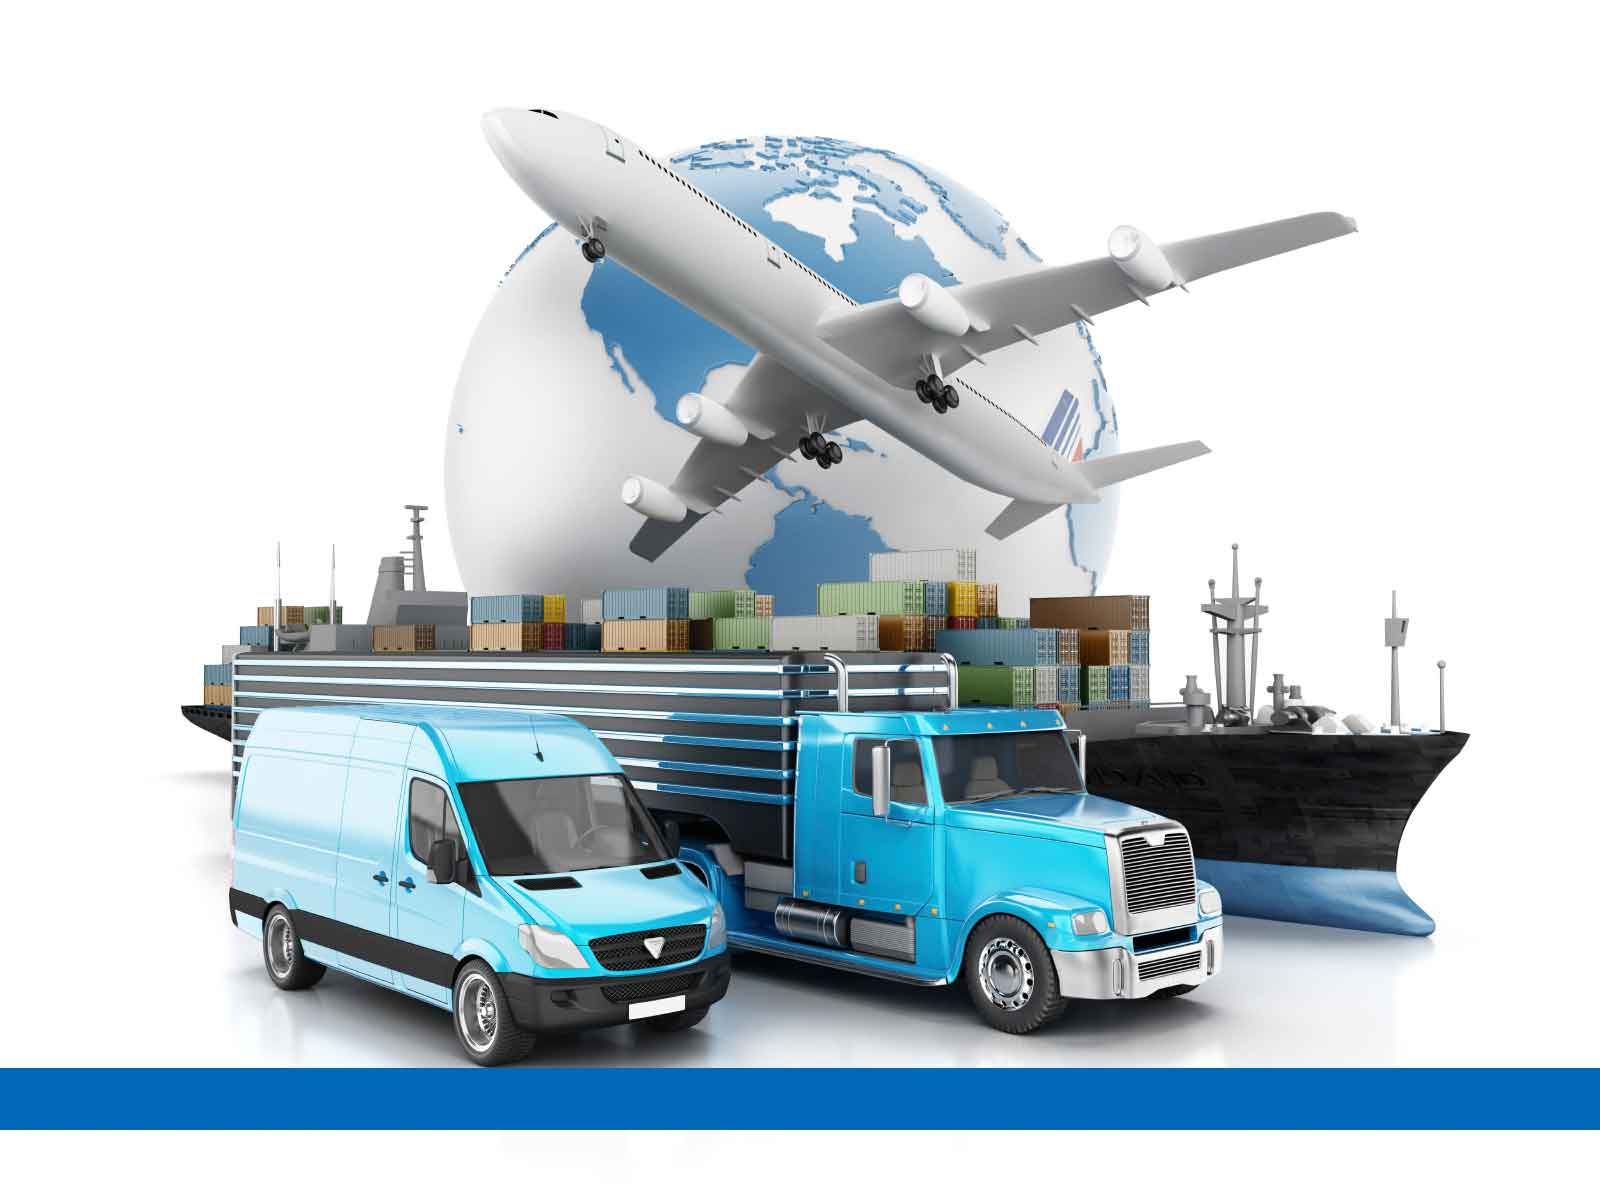 Global Freight Forwarding Company in Nigeria - Fortune Global